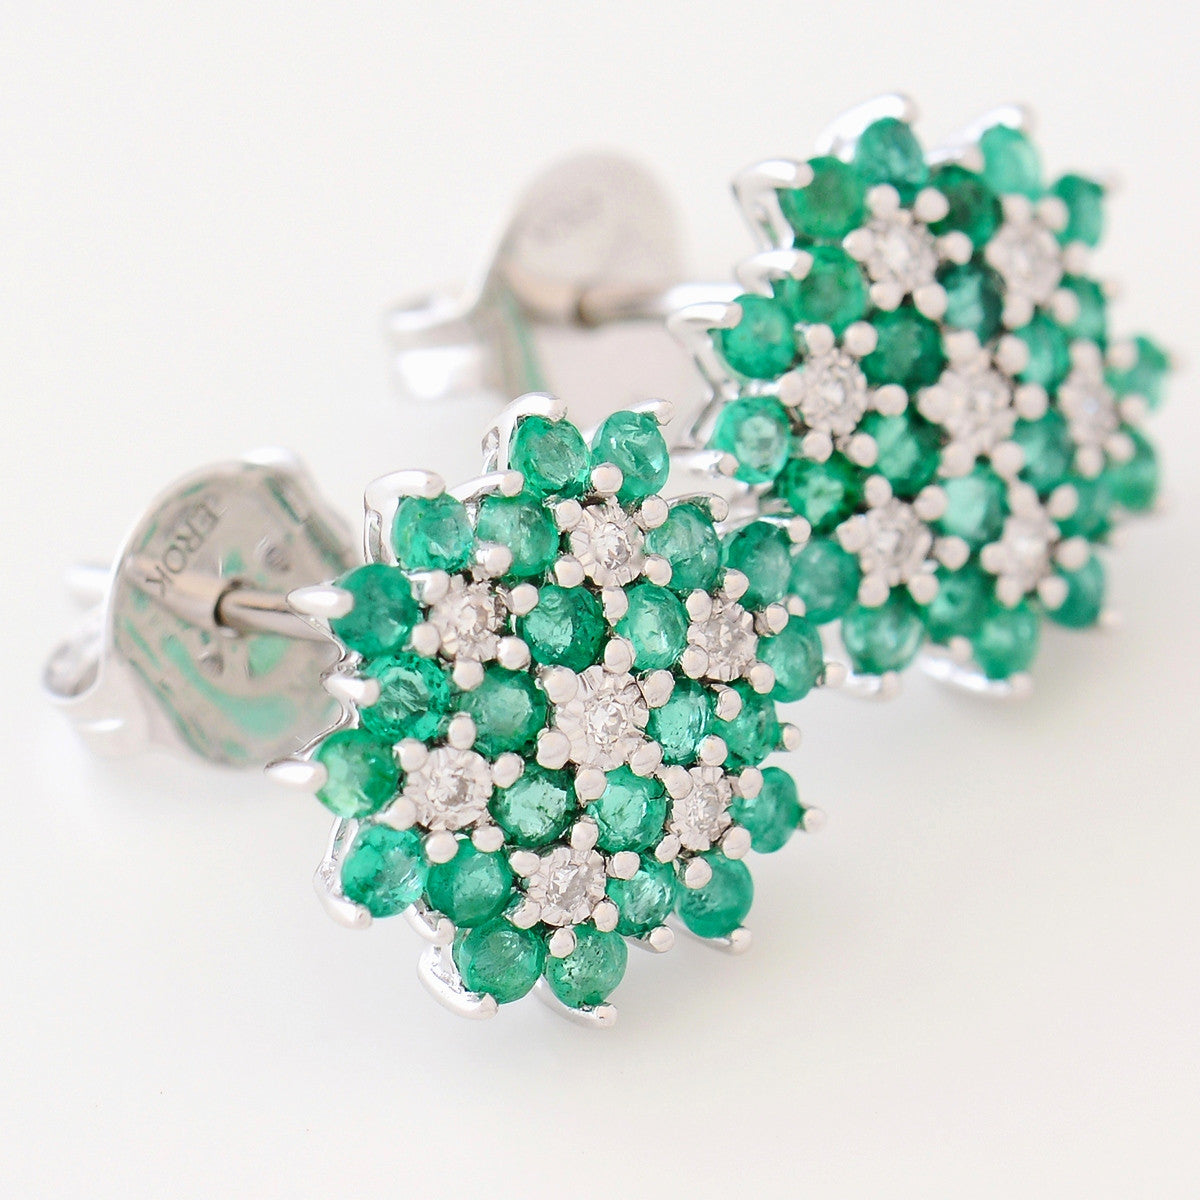 9K SOLID WHITE GOLD 1.00CT NATURAL EMERALD CLUSTER EARRINGS WITH 14 DIAMONDS.